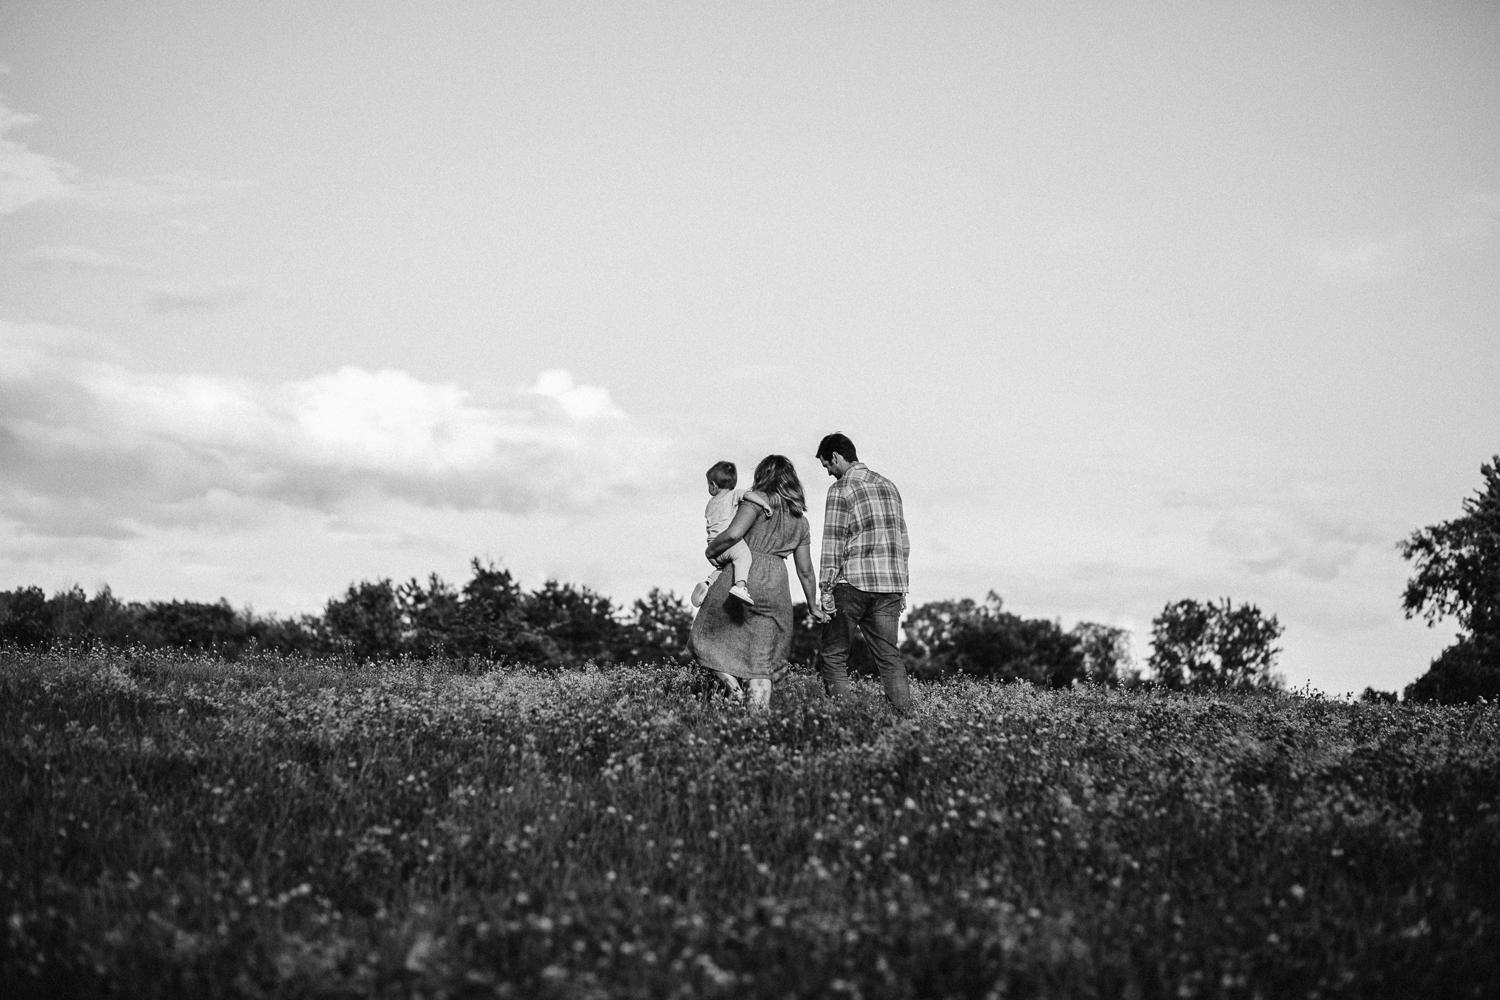 perth lanark county family outdoor photographer - kerry ford photography-022.jpg